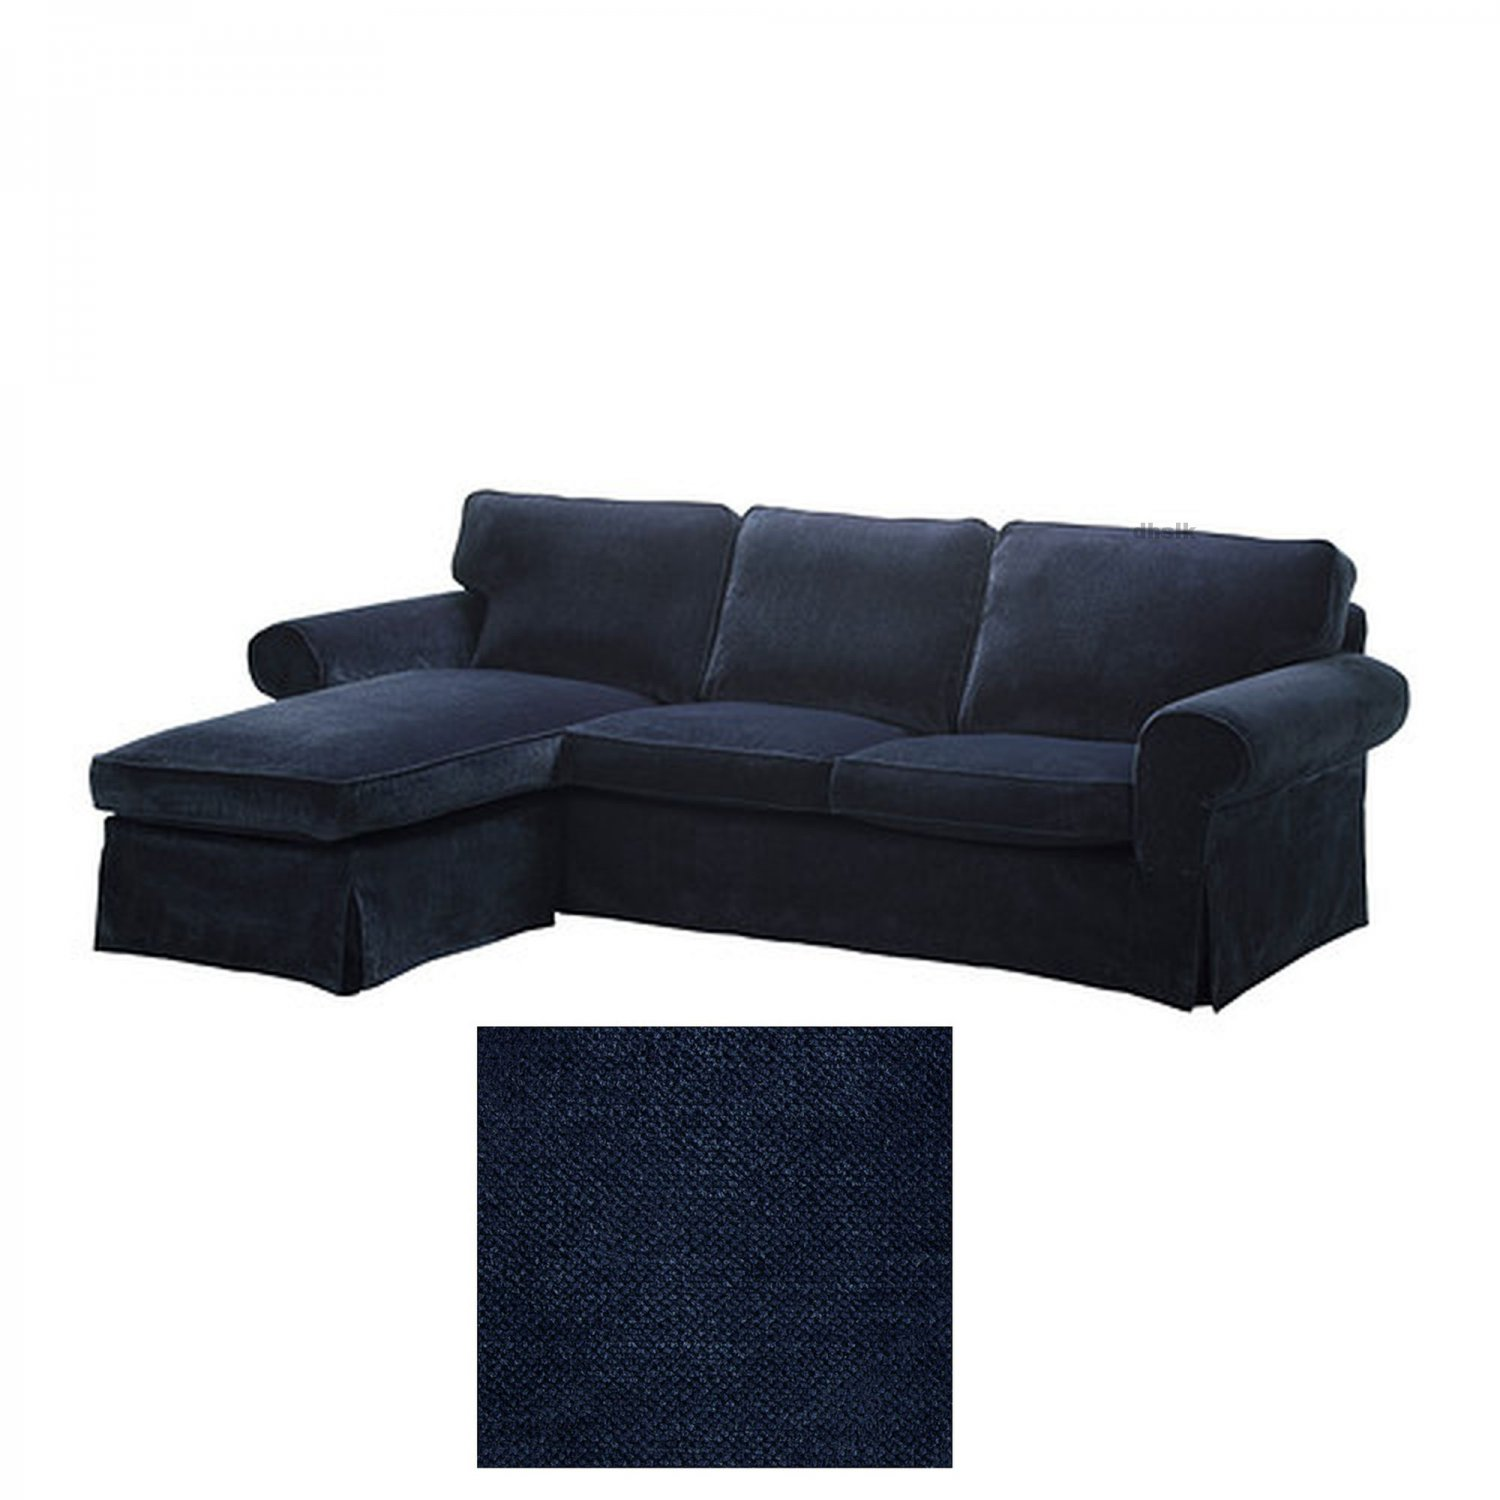 Ikea ektorp 2 seat loveseat sofa with chaise cover for Furniture covers